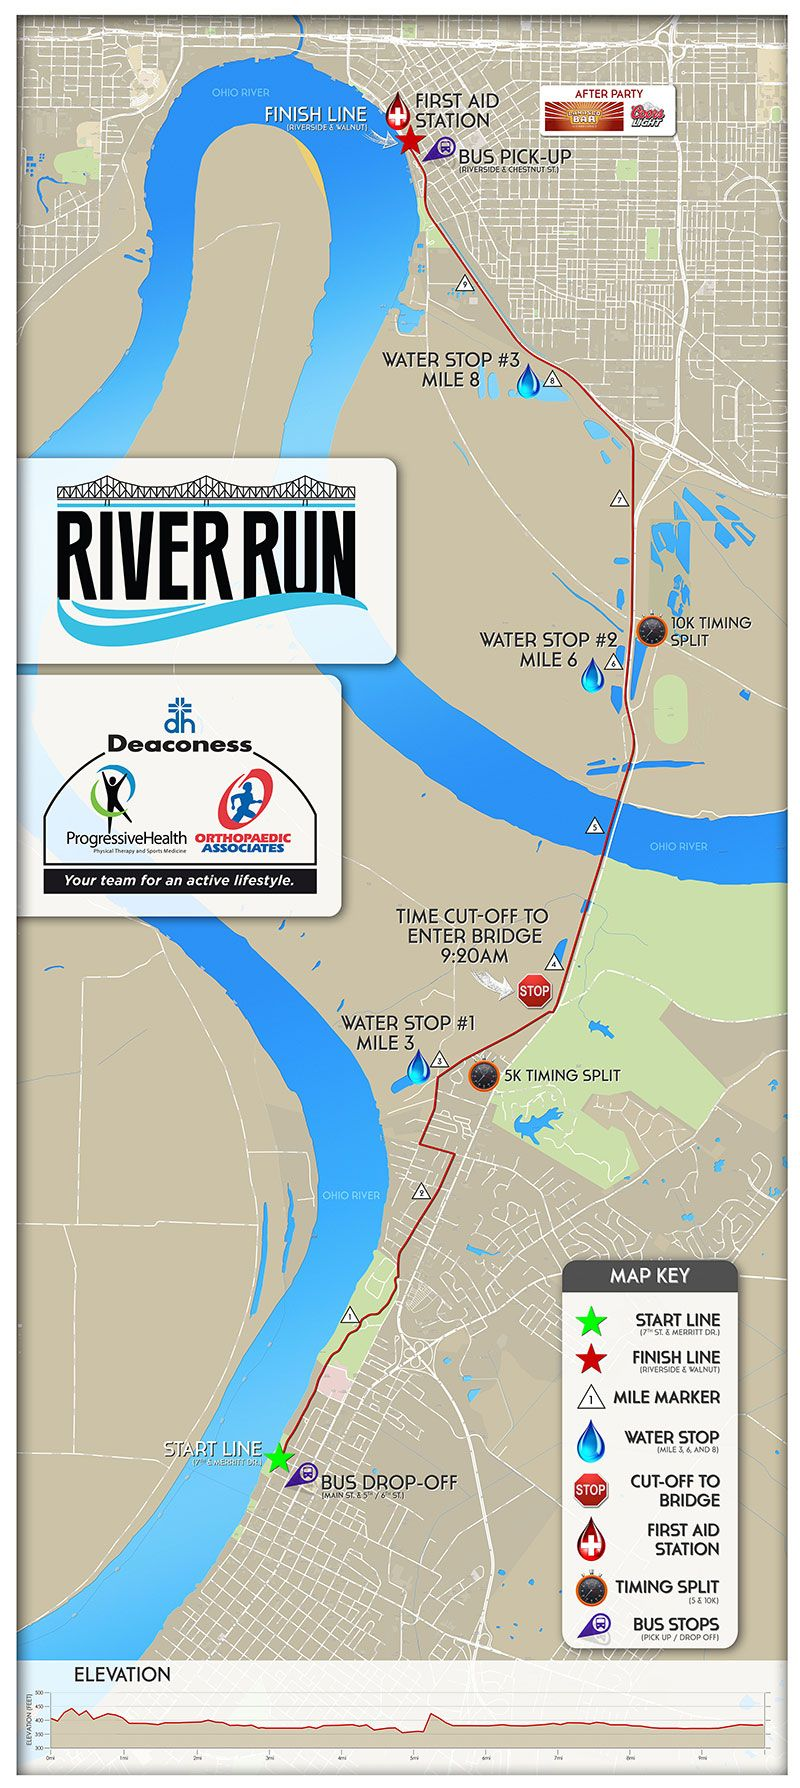 Race Route The River Run Evansville Indiana Evansville Ohio River